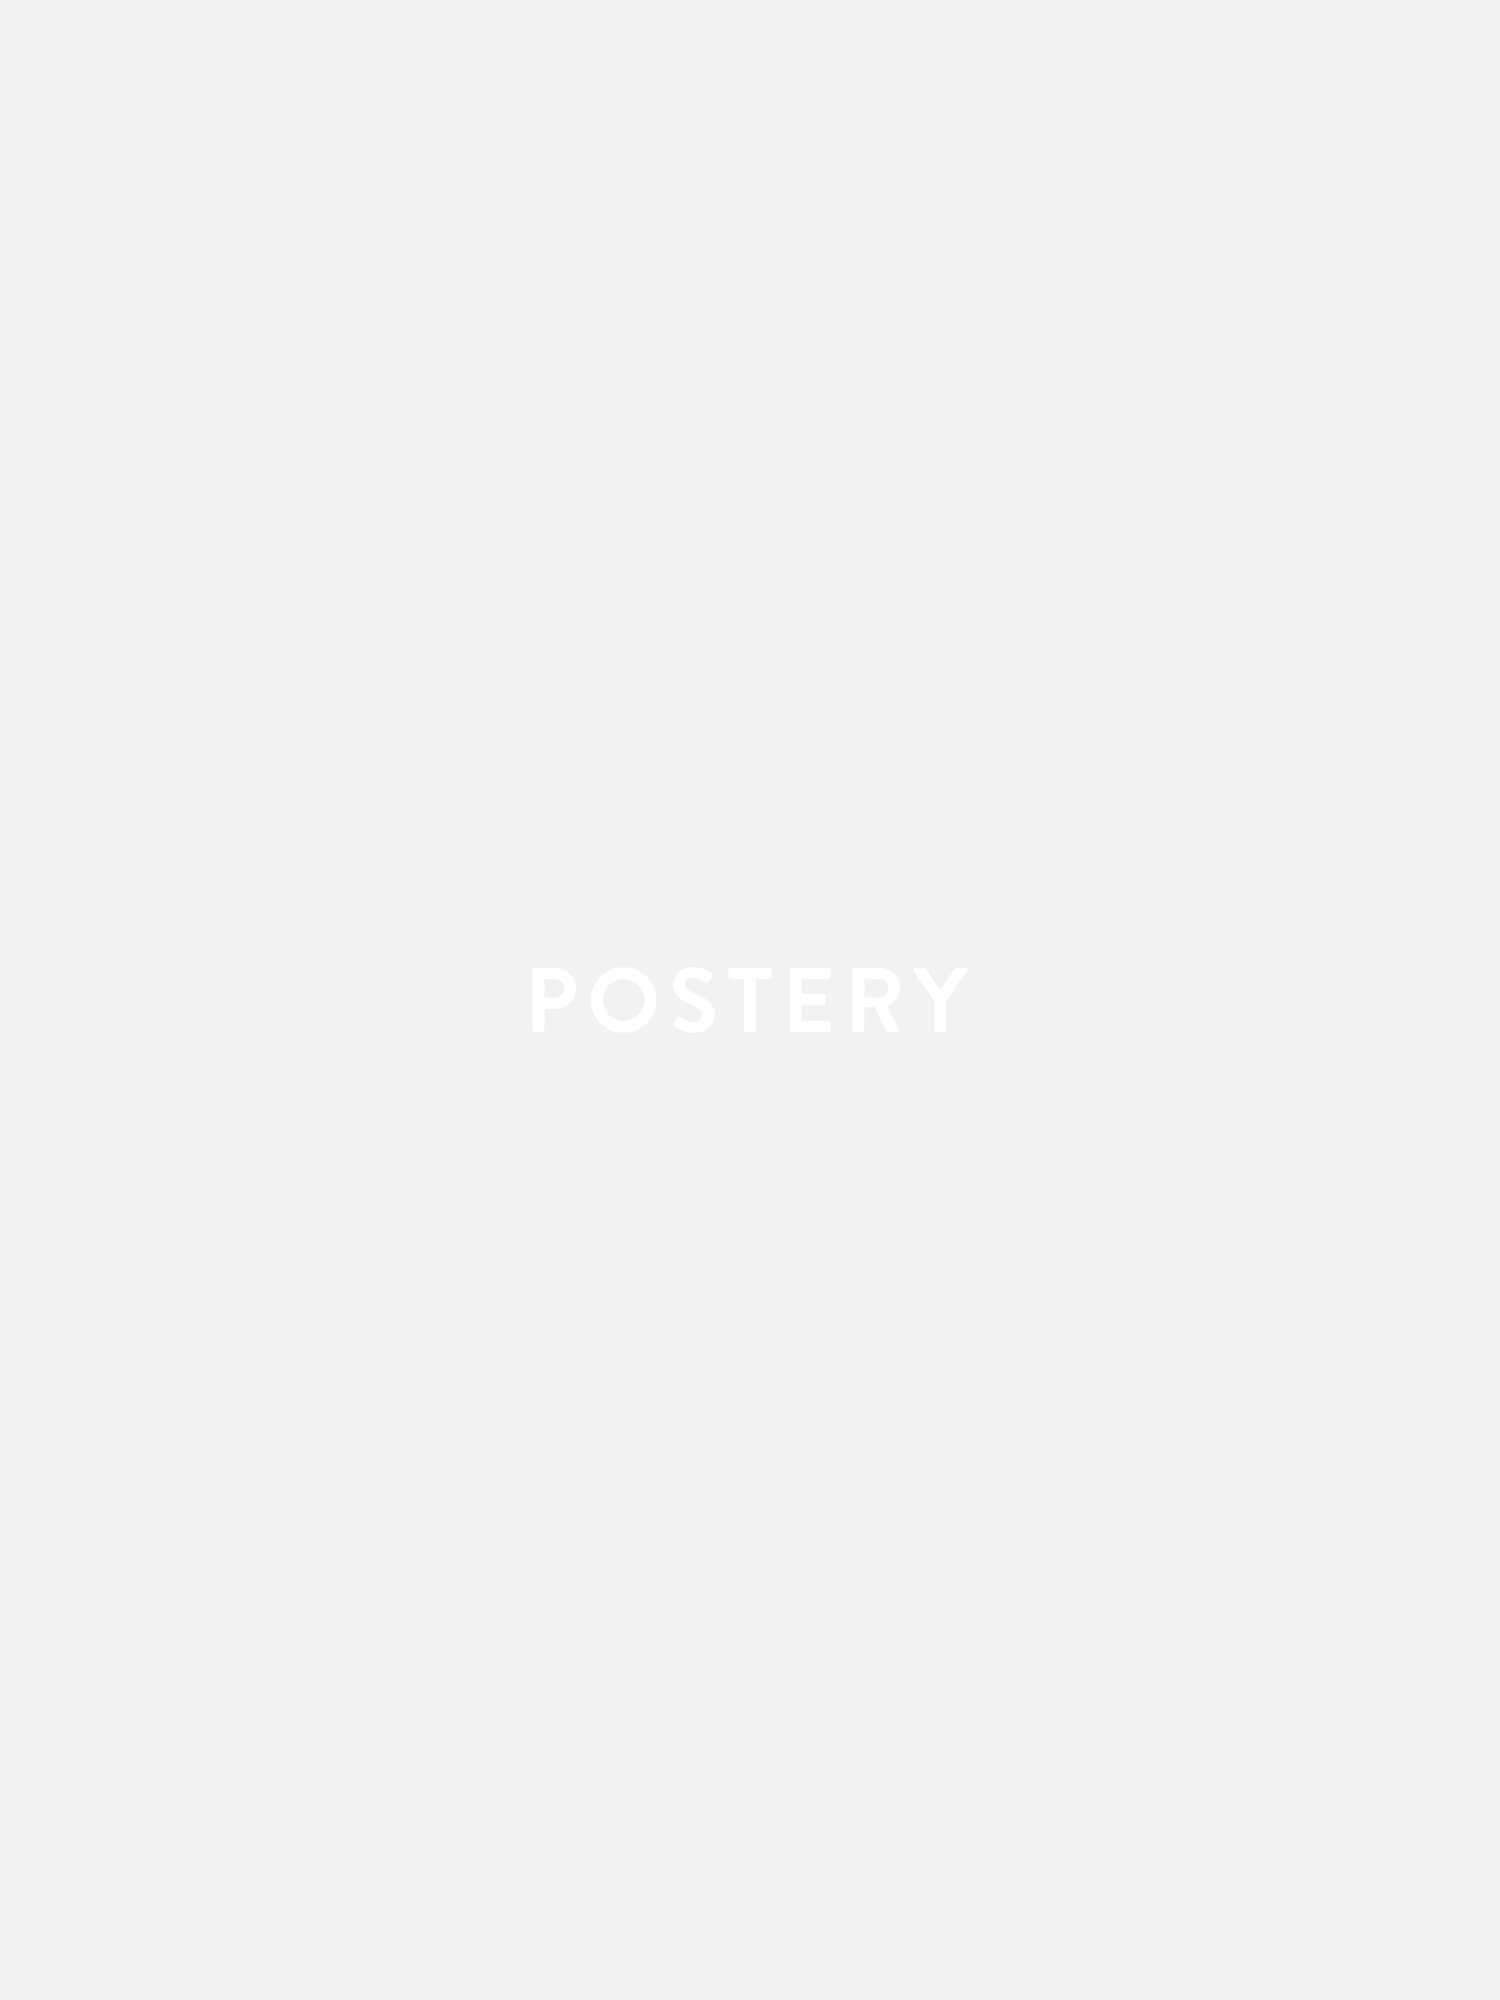 My First Alphabet Poster